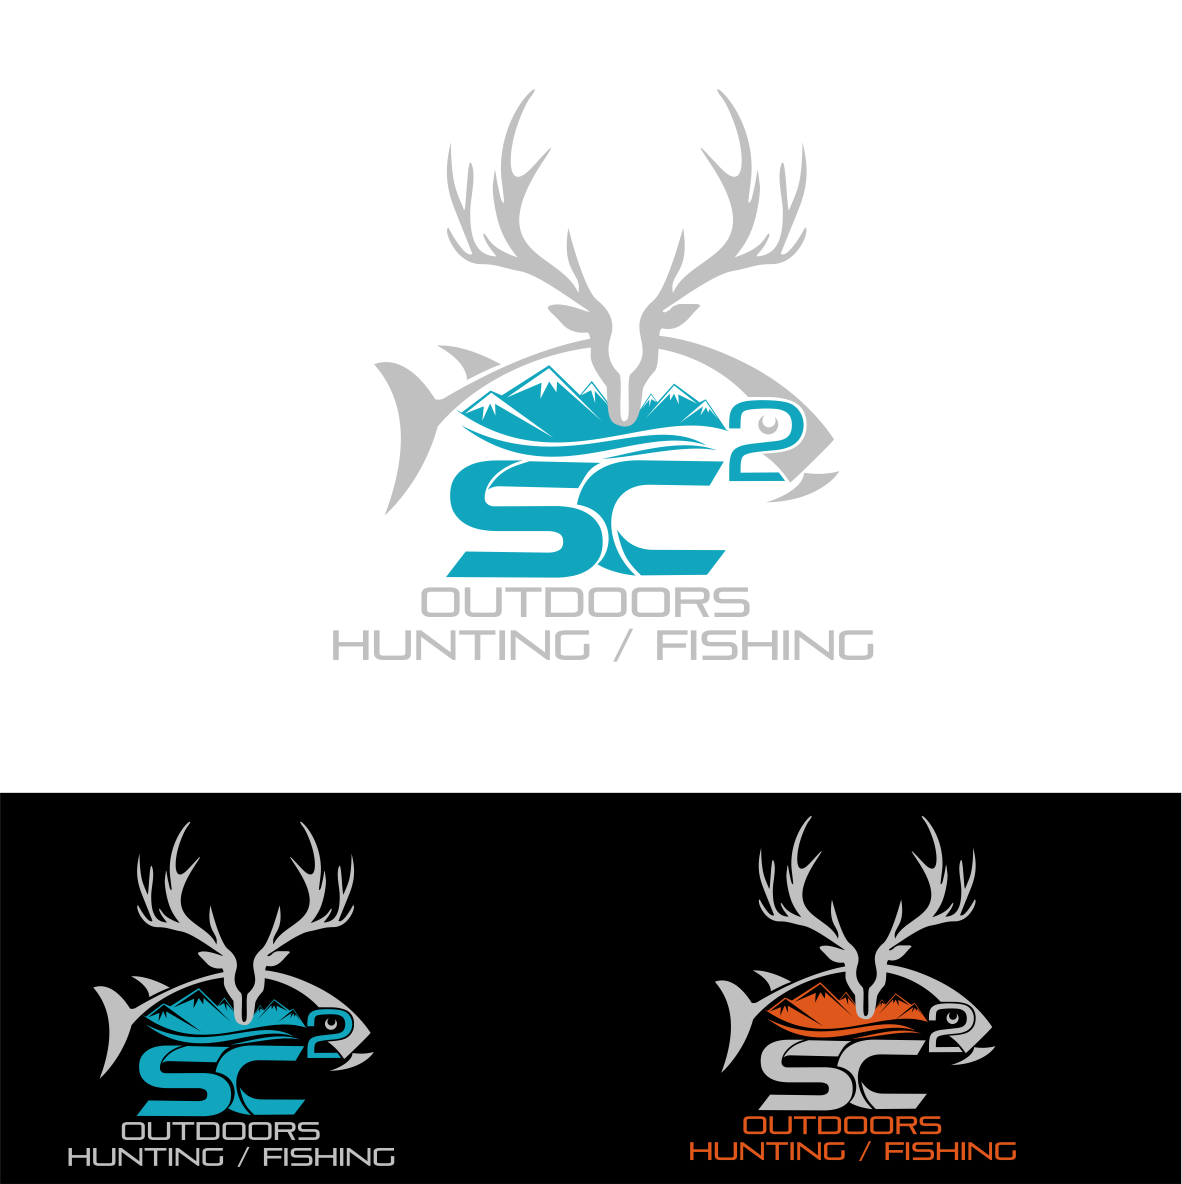 Logo Design by Private User - Entry No. 233 in the Logo Design Contest Imaginative Logo Design for SC2 Outdoors Hunting / Fishing Logo.